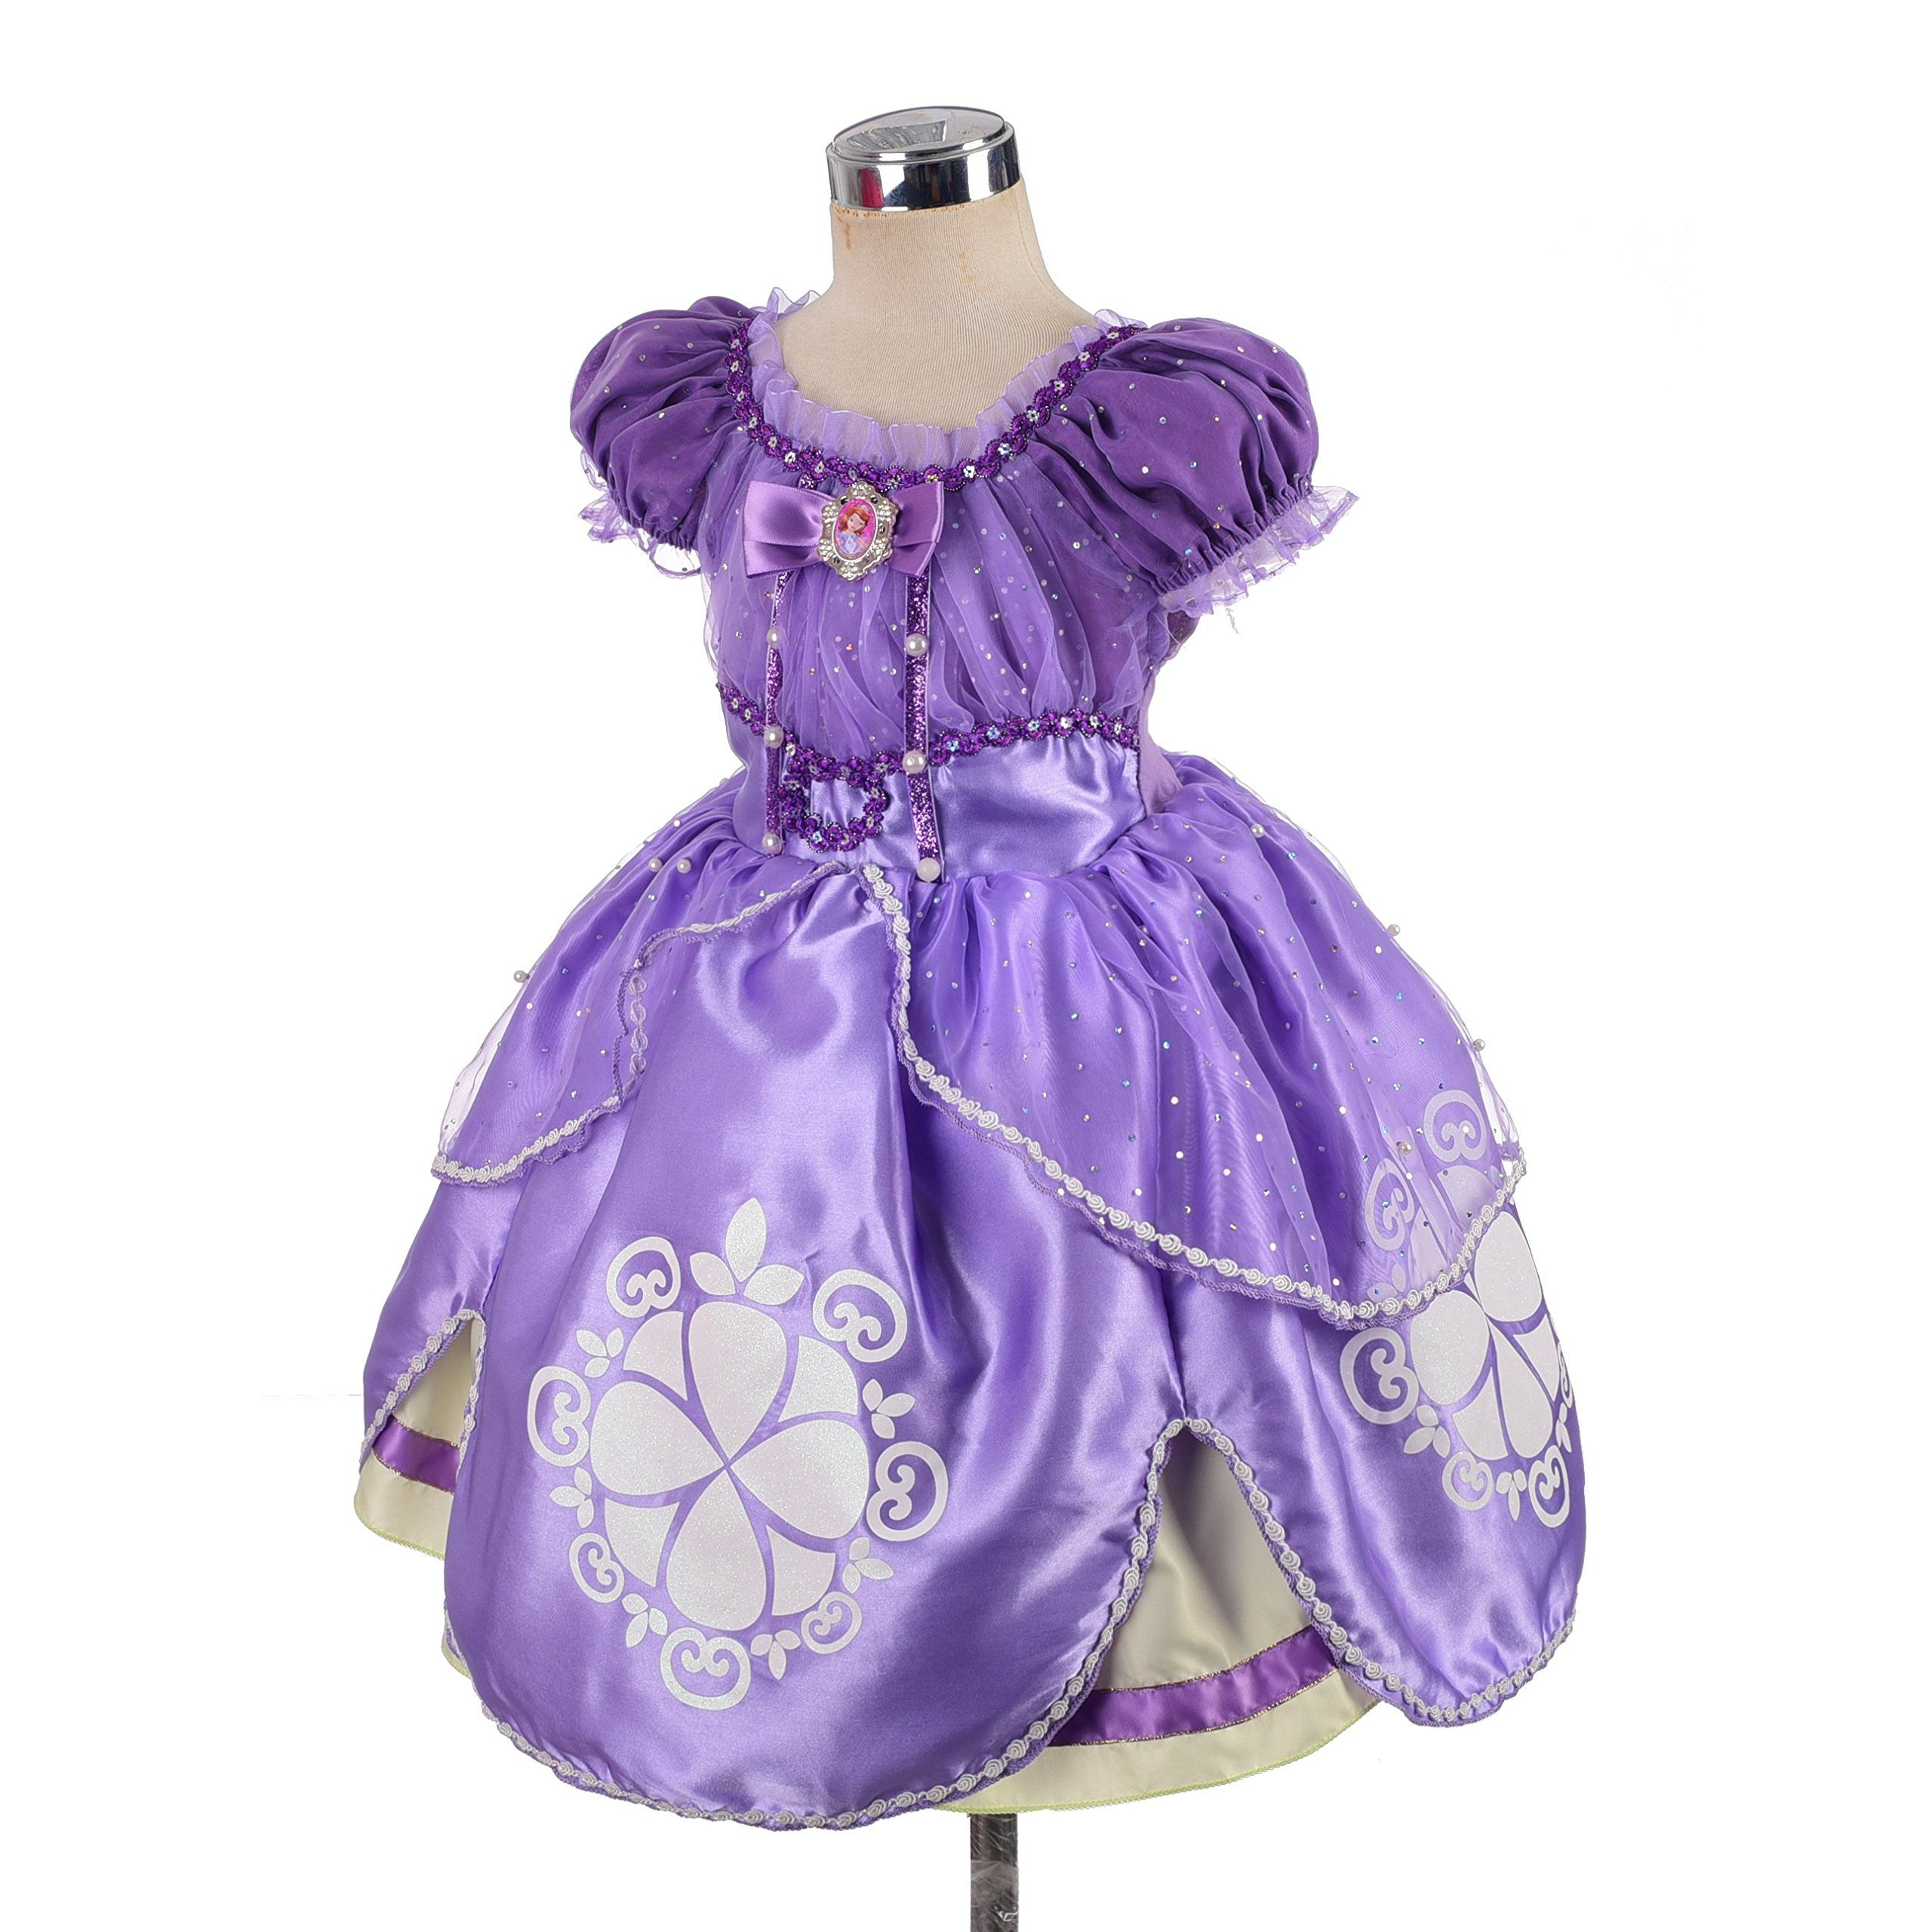 Lito Angels Girls Princess Sofia The First Dress Up Costume Cosplay Fancy Party Dress Outfit With Acc Fancy Dresses Party Dress Up Costumes Party Dress Outfits [ 2560 x 2560 Pixel ]